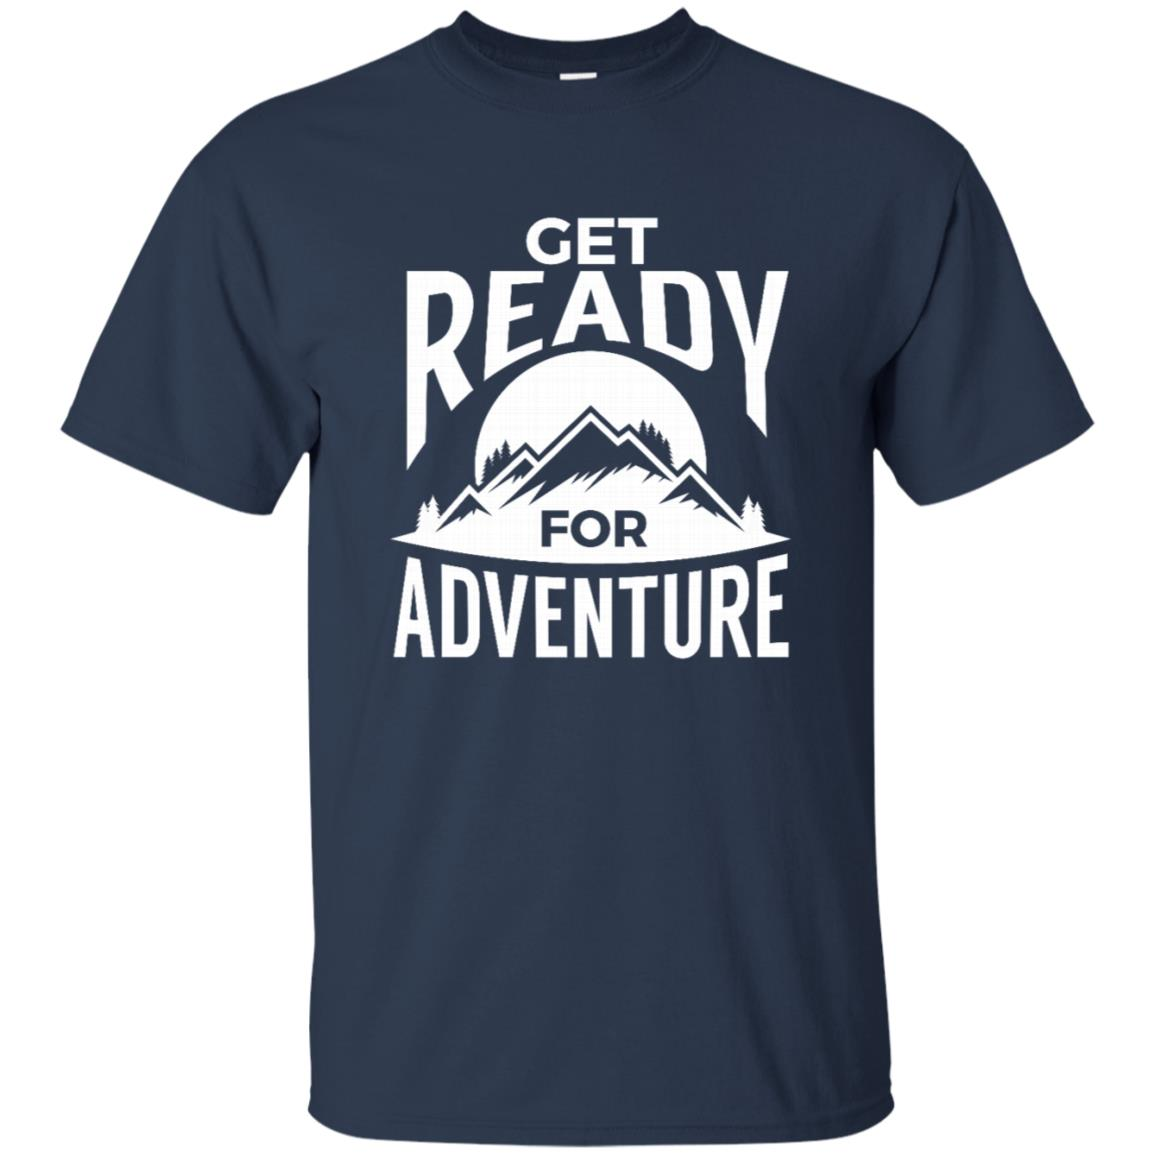 Get Ready For Adventure Hiking, Climbing Gift Unisex Short Sleeve